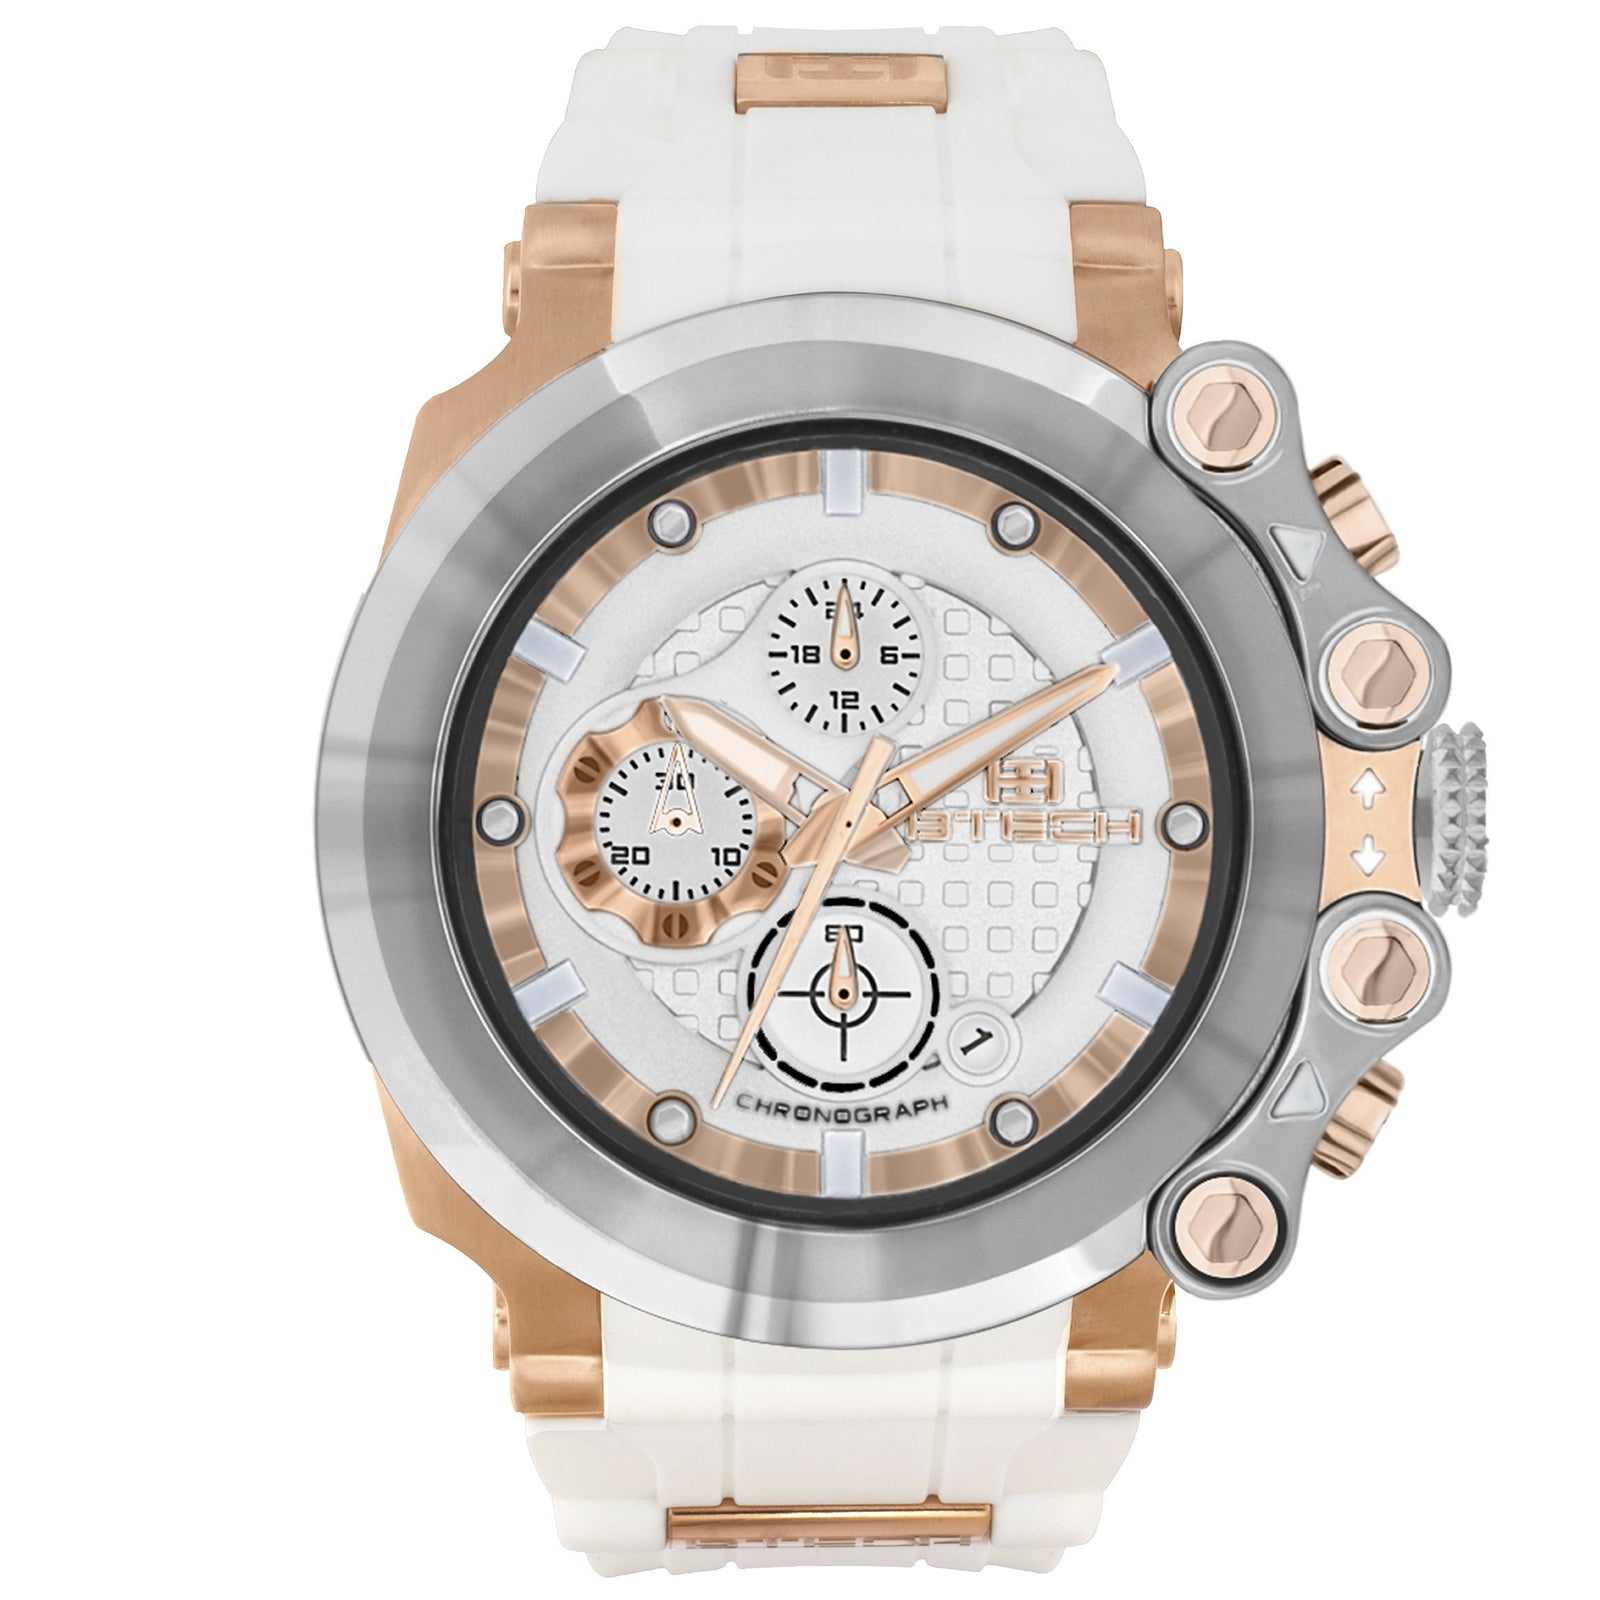 BTECH Cite Chrono White Unisex Watch (BT-CC-331-01)